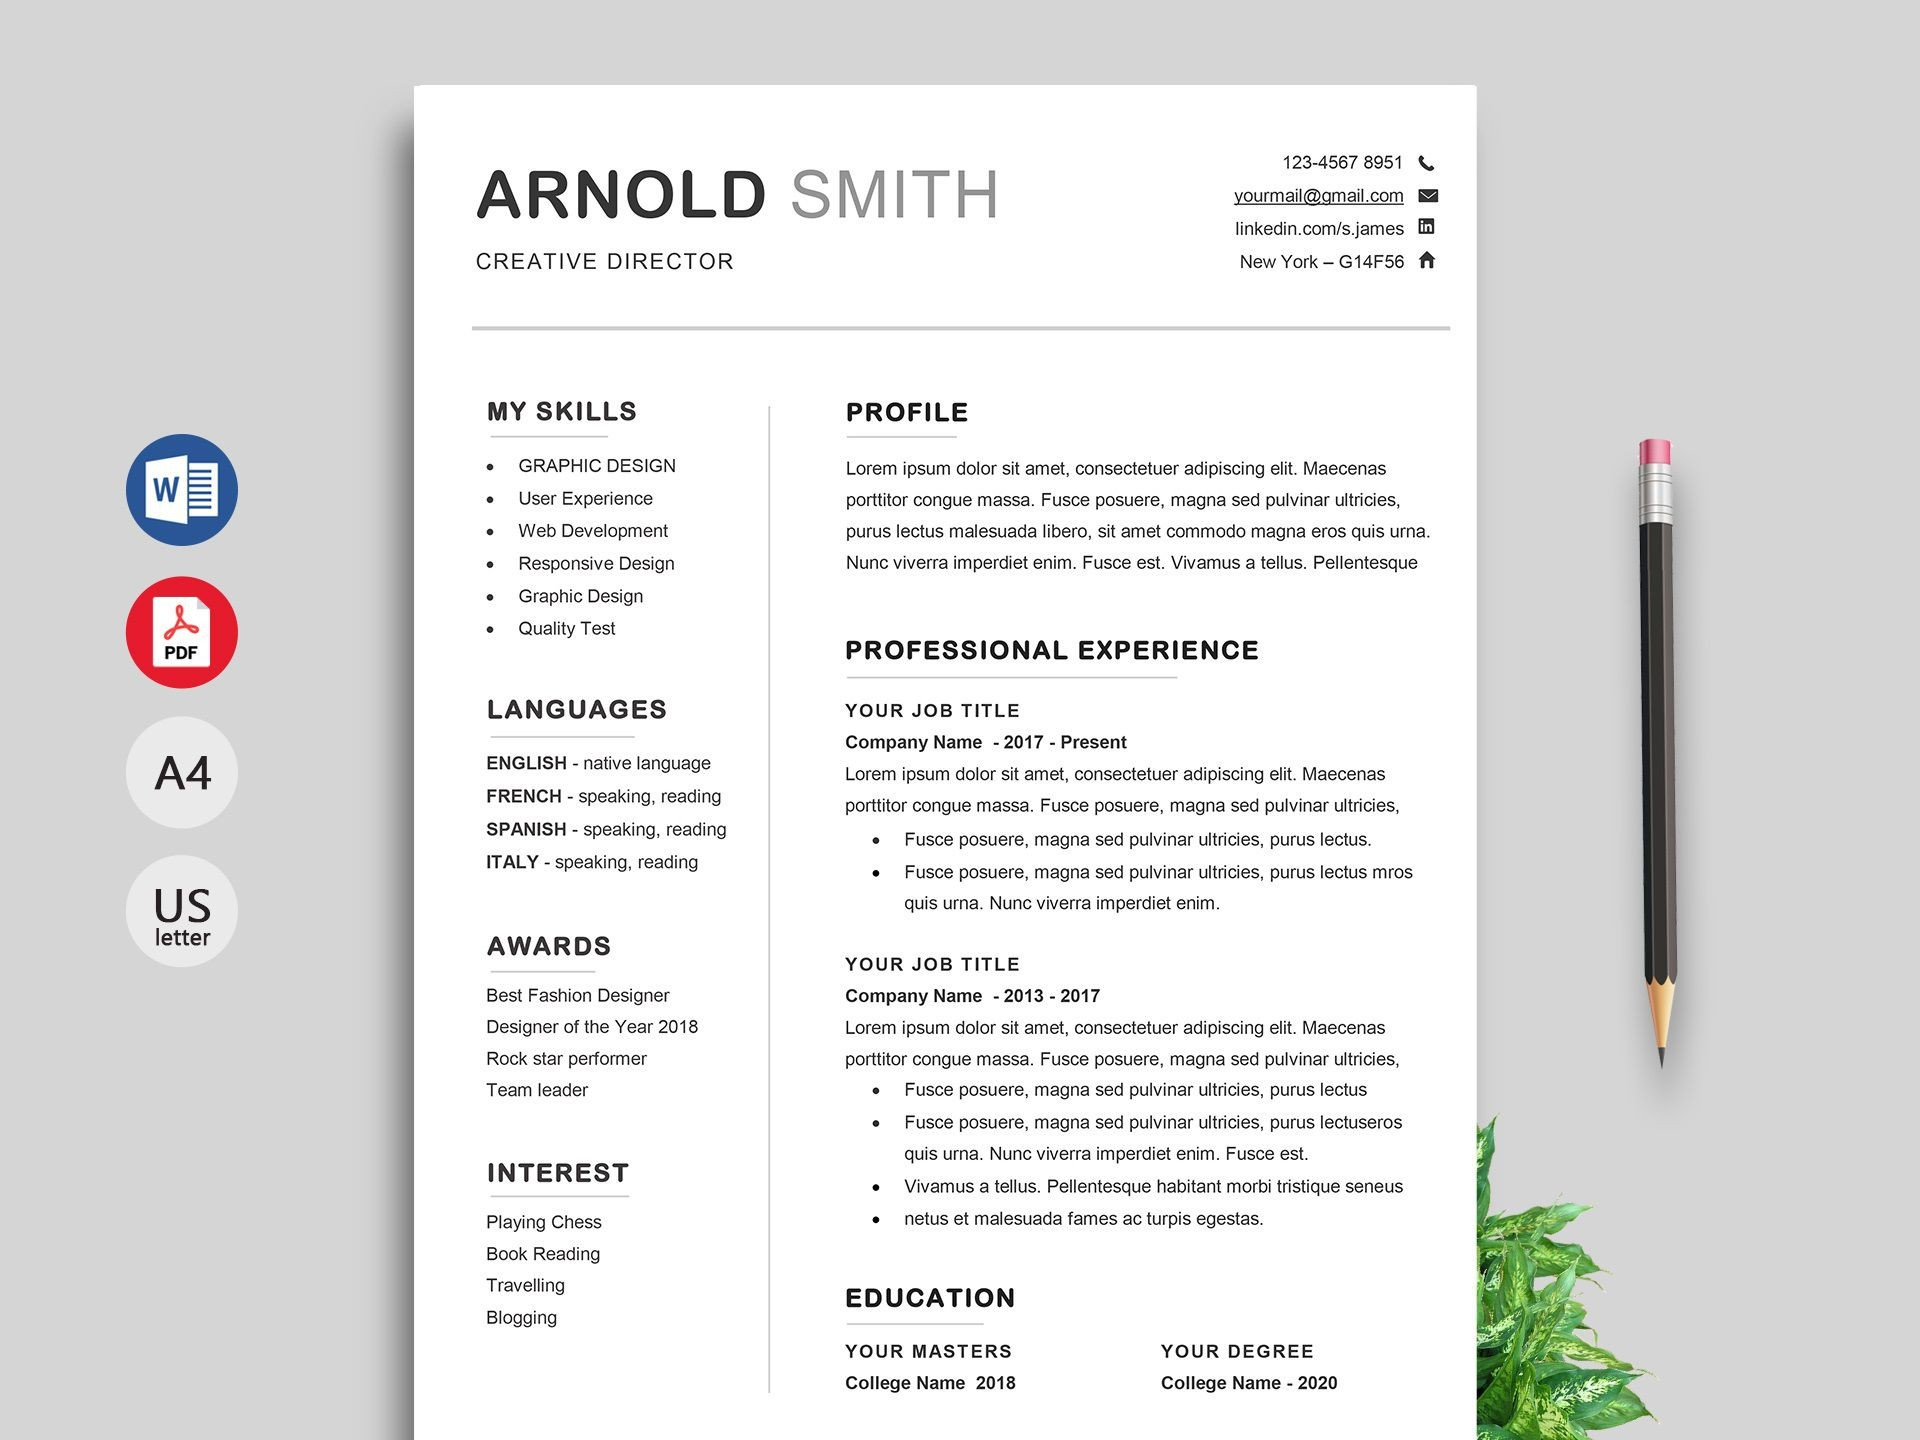 001 Magnificent Resume Template Free Word Download High Definition  Cv With Photo Malaysia Australia1920